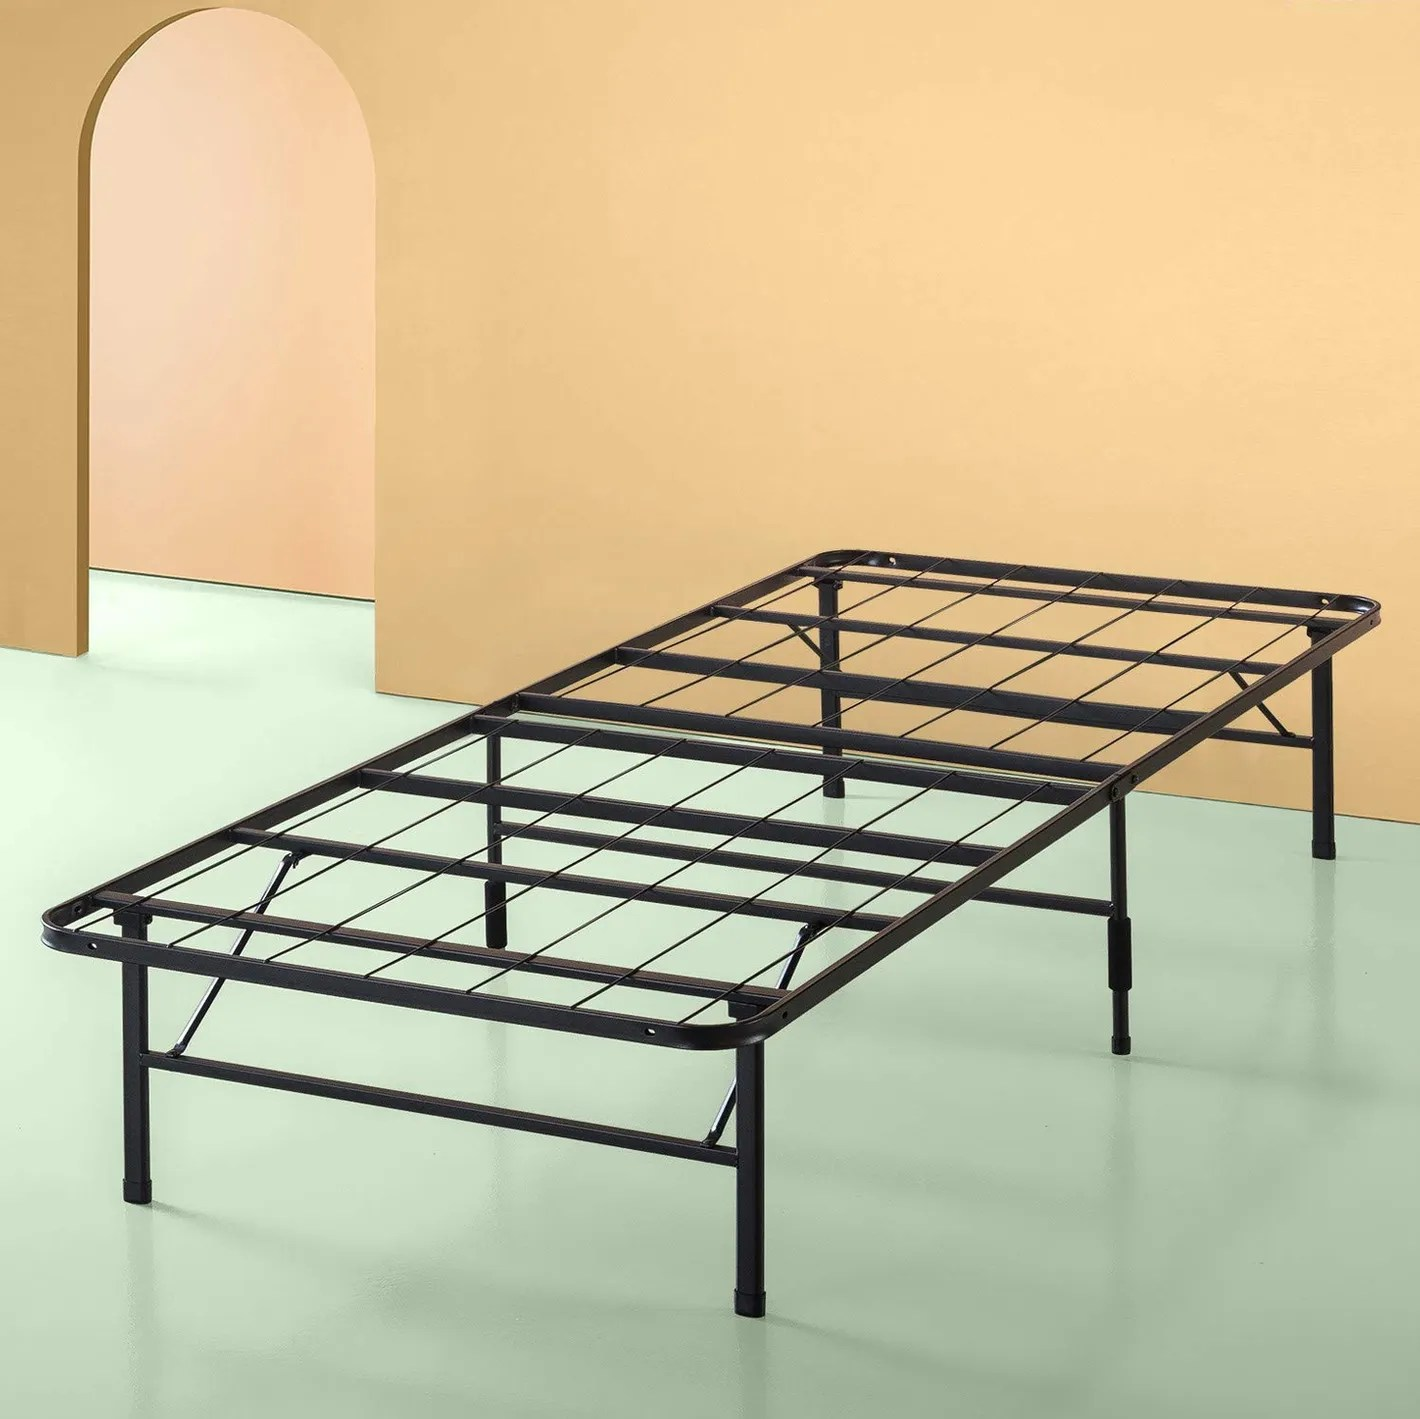 Best Boys Beds Zinus Sleep Master Platform Metal Bed Frame Foundation Set Twin